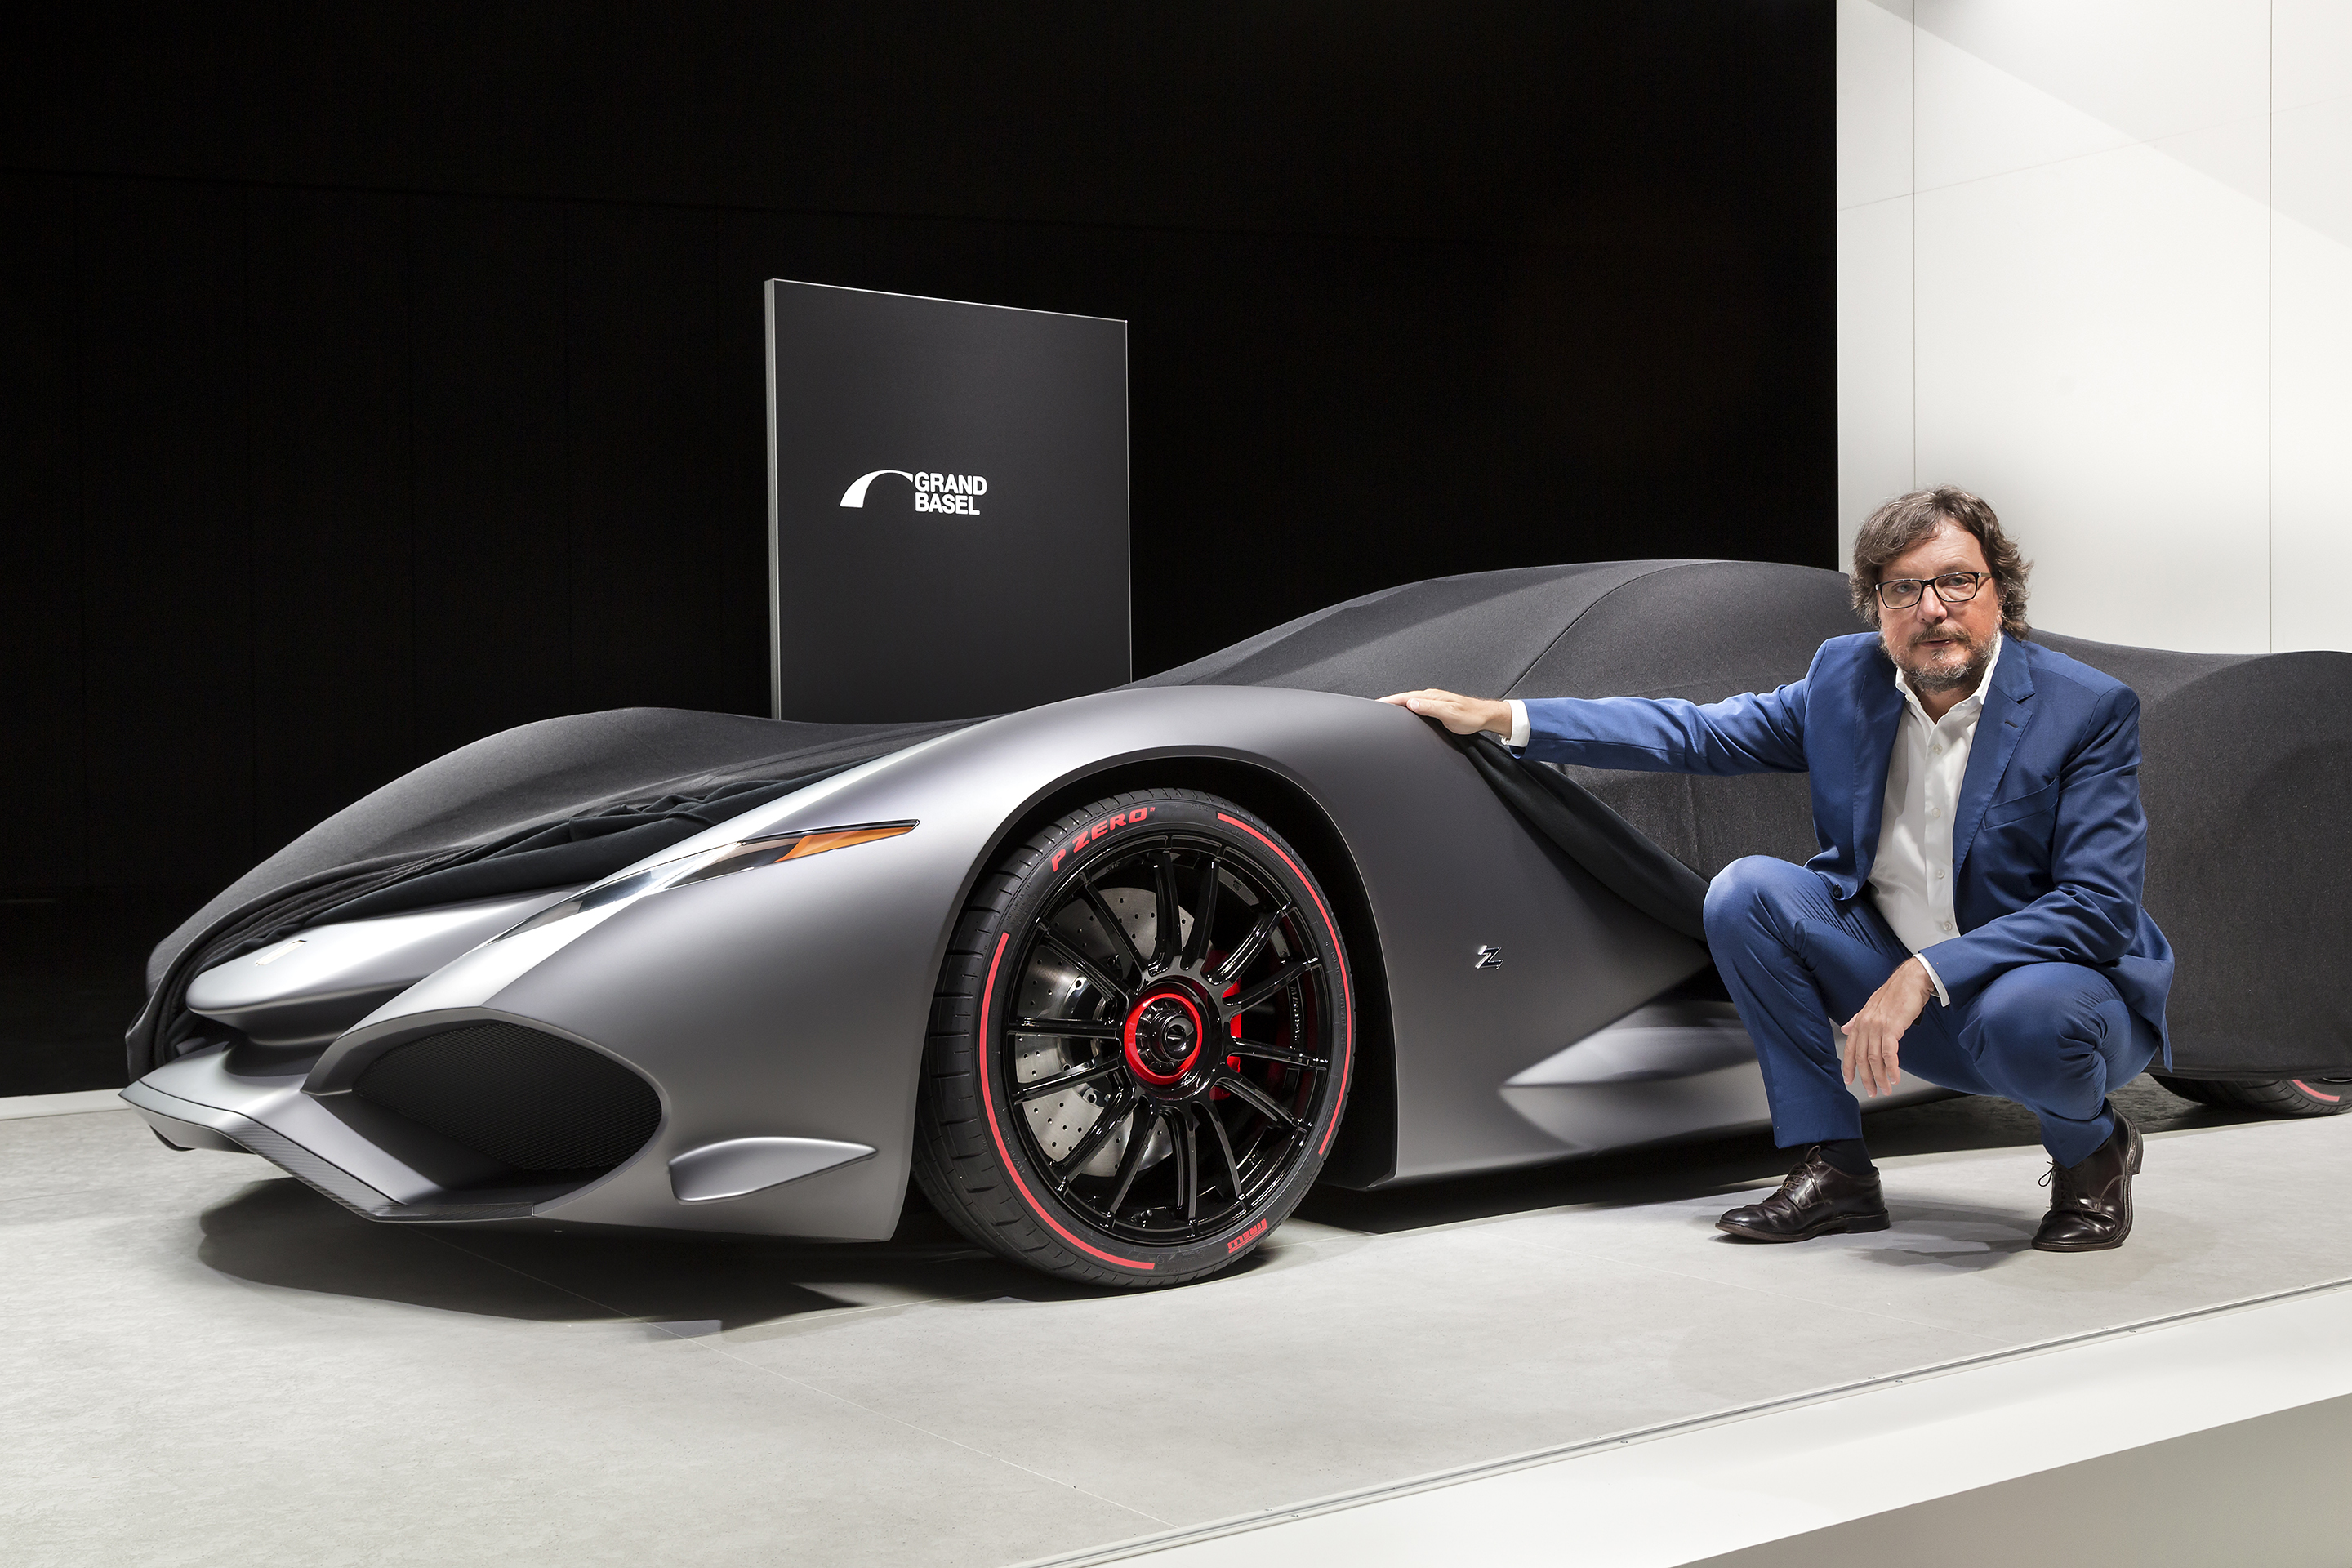 Zagato IsoRivolta Vision Gran Turismo announced ahead of full reveal